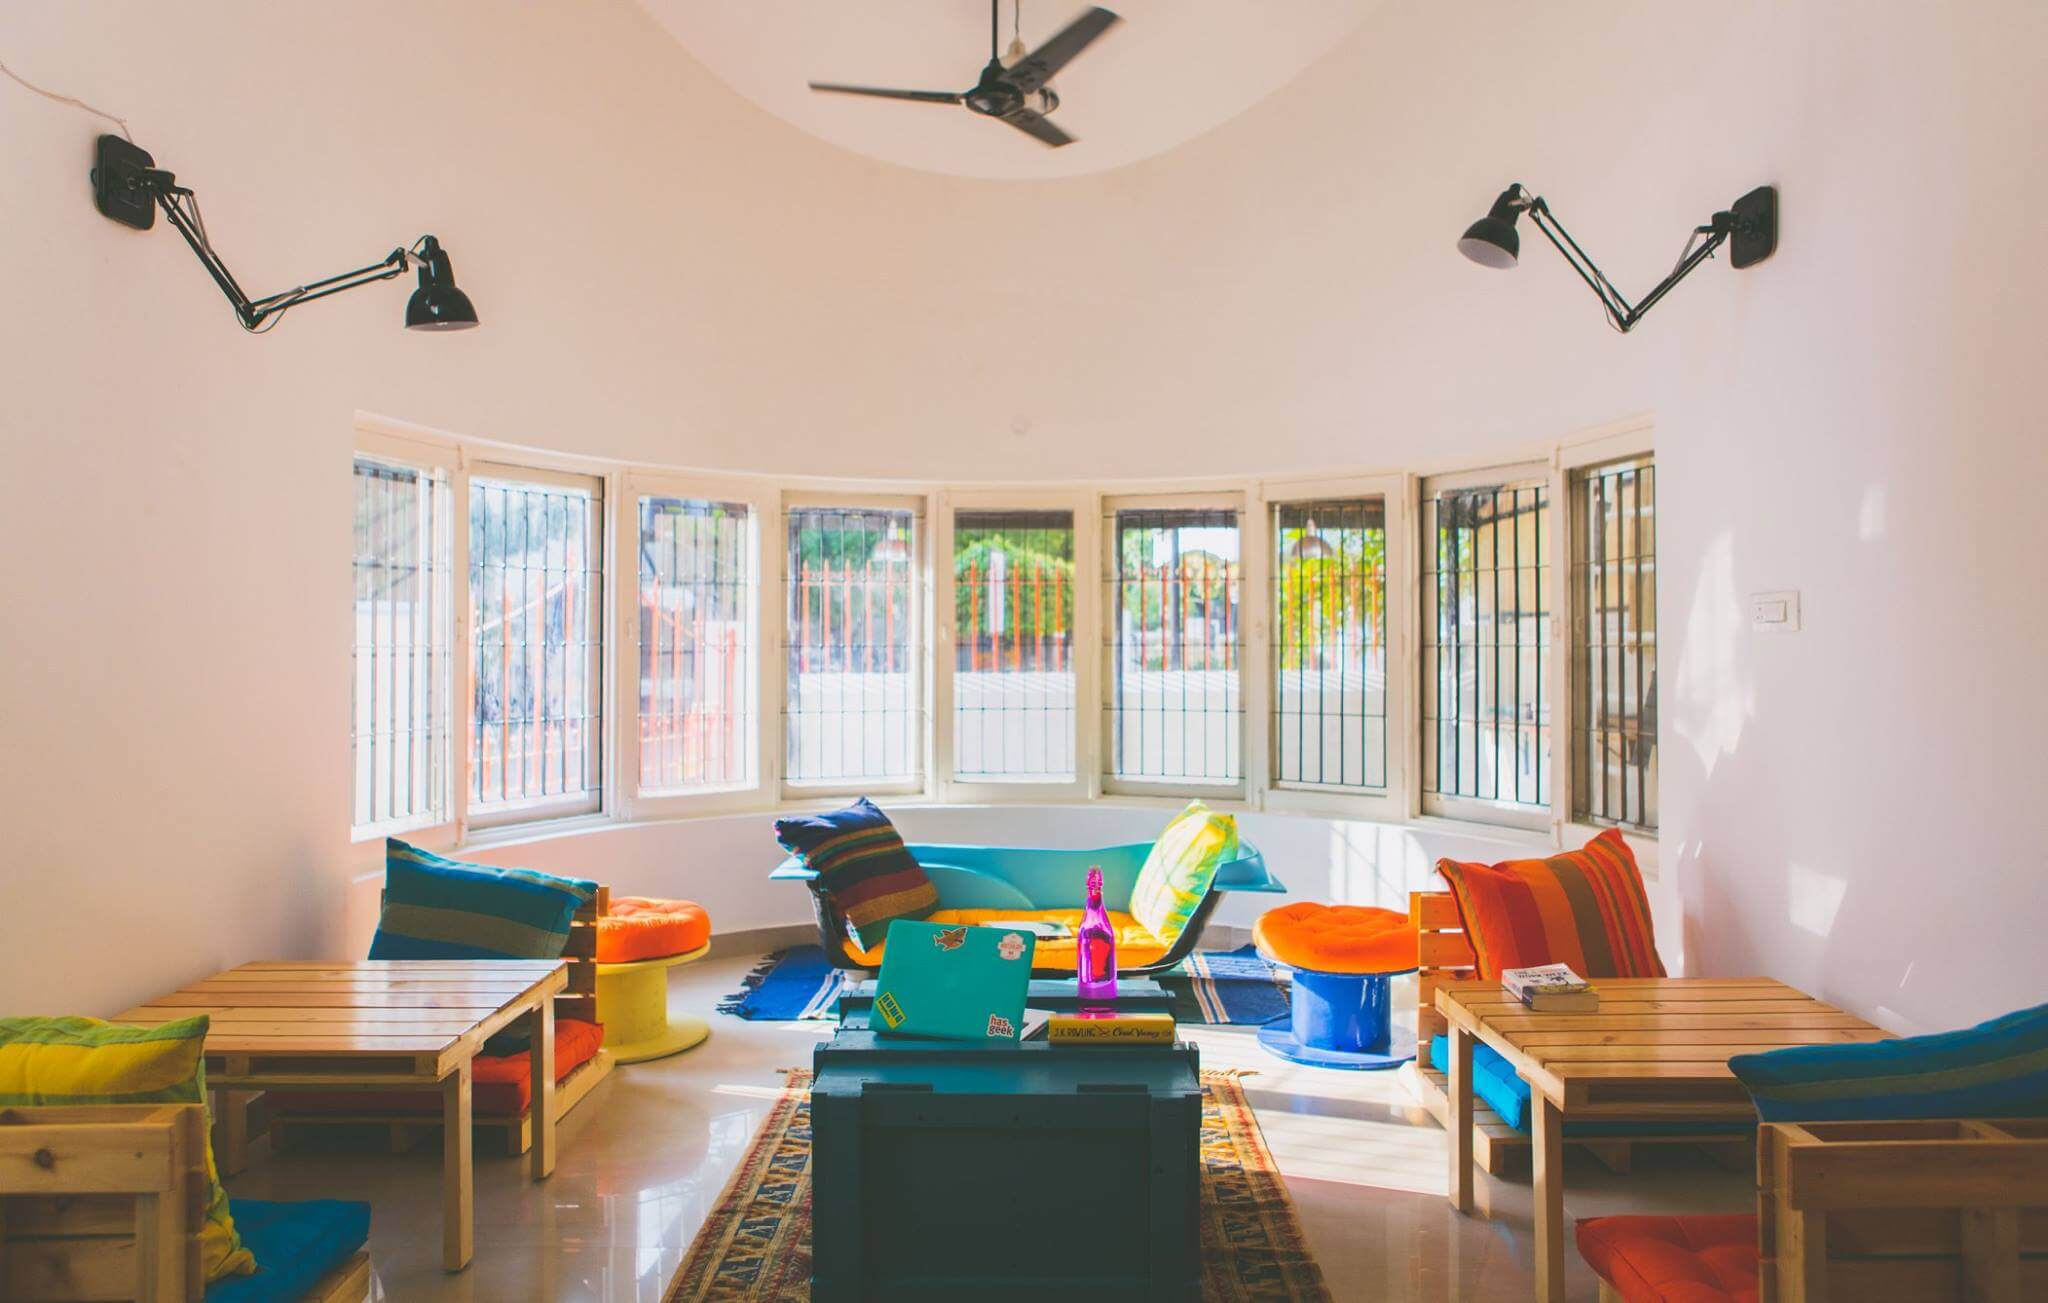 Construkt is a hostel-cum-coworking space for those traveling entrepreneurs